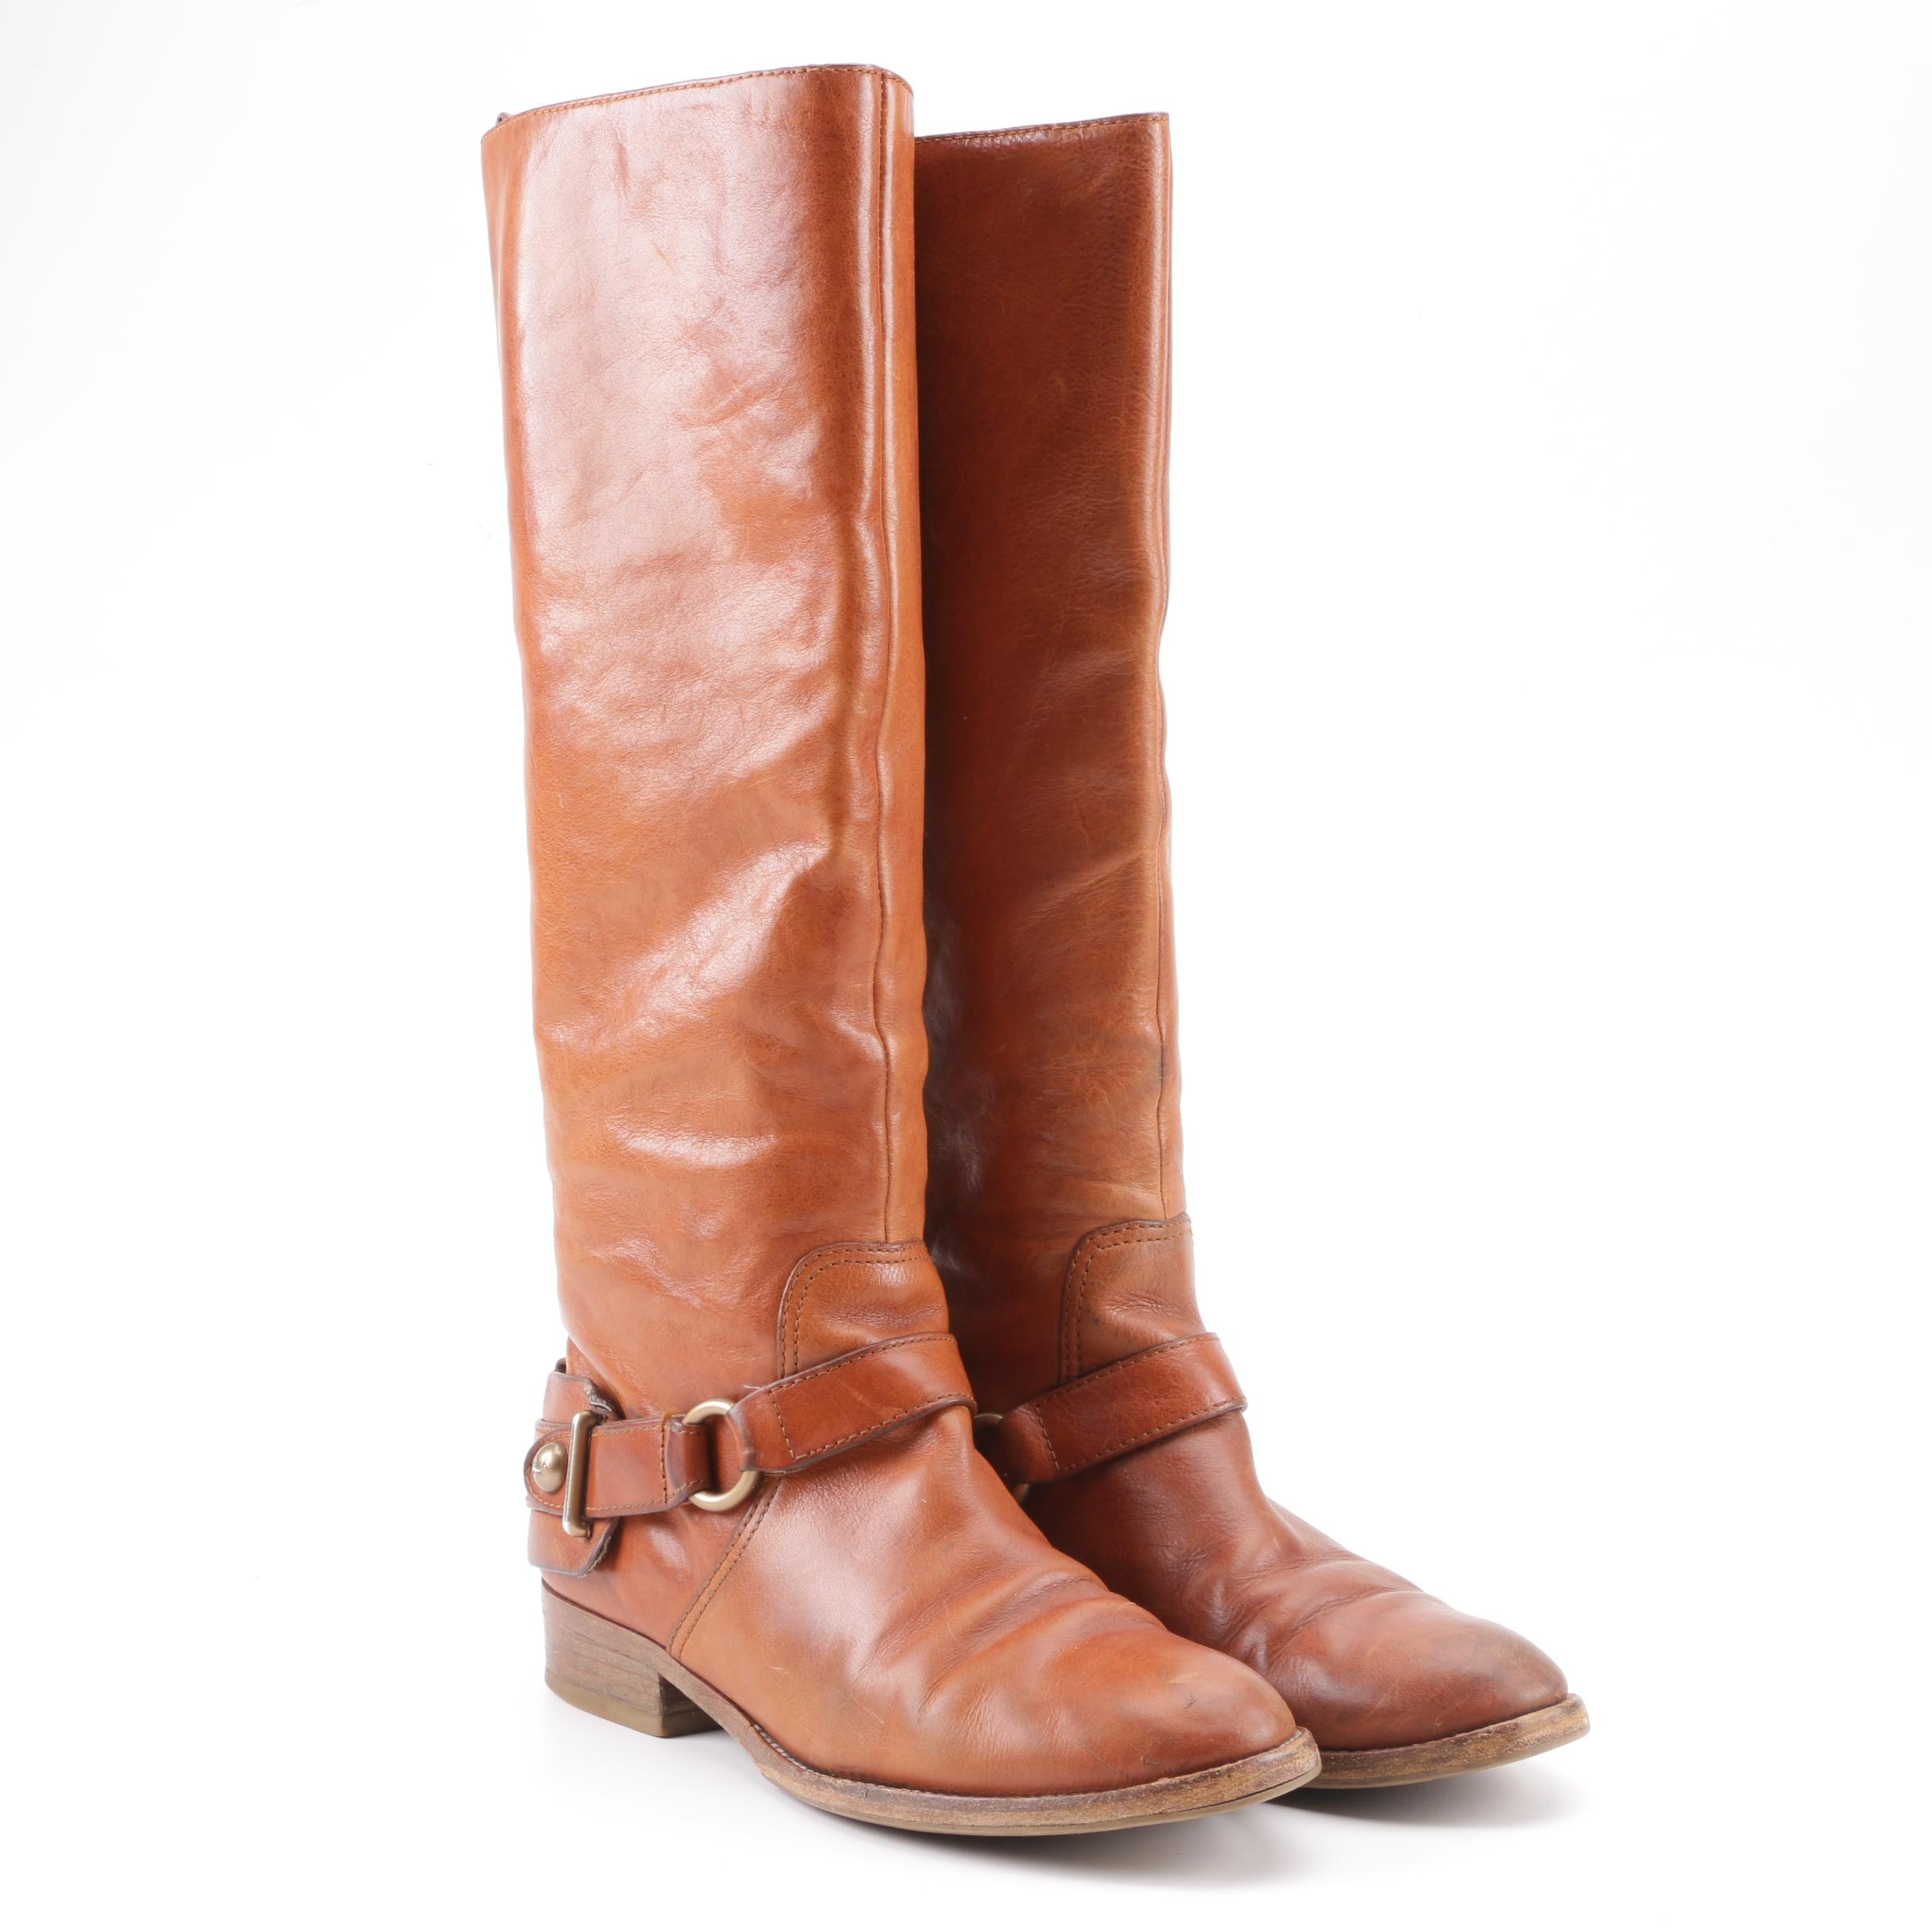 Women's Coach Natale Tan Leather Riding Boots